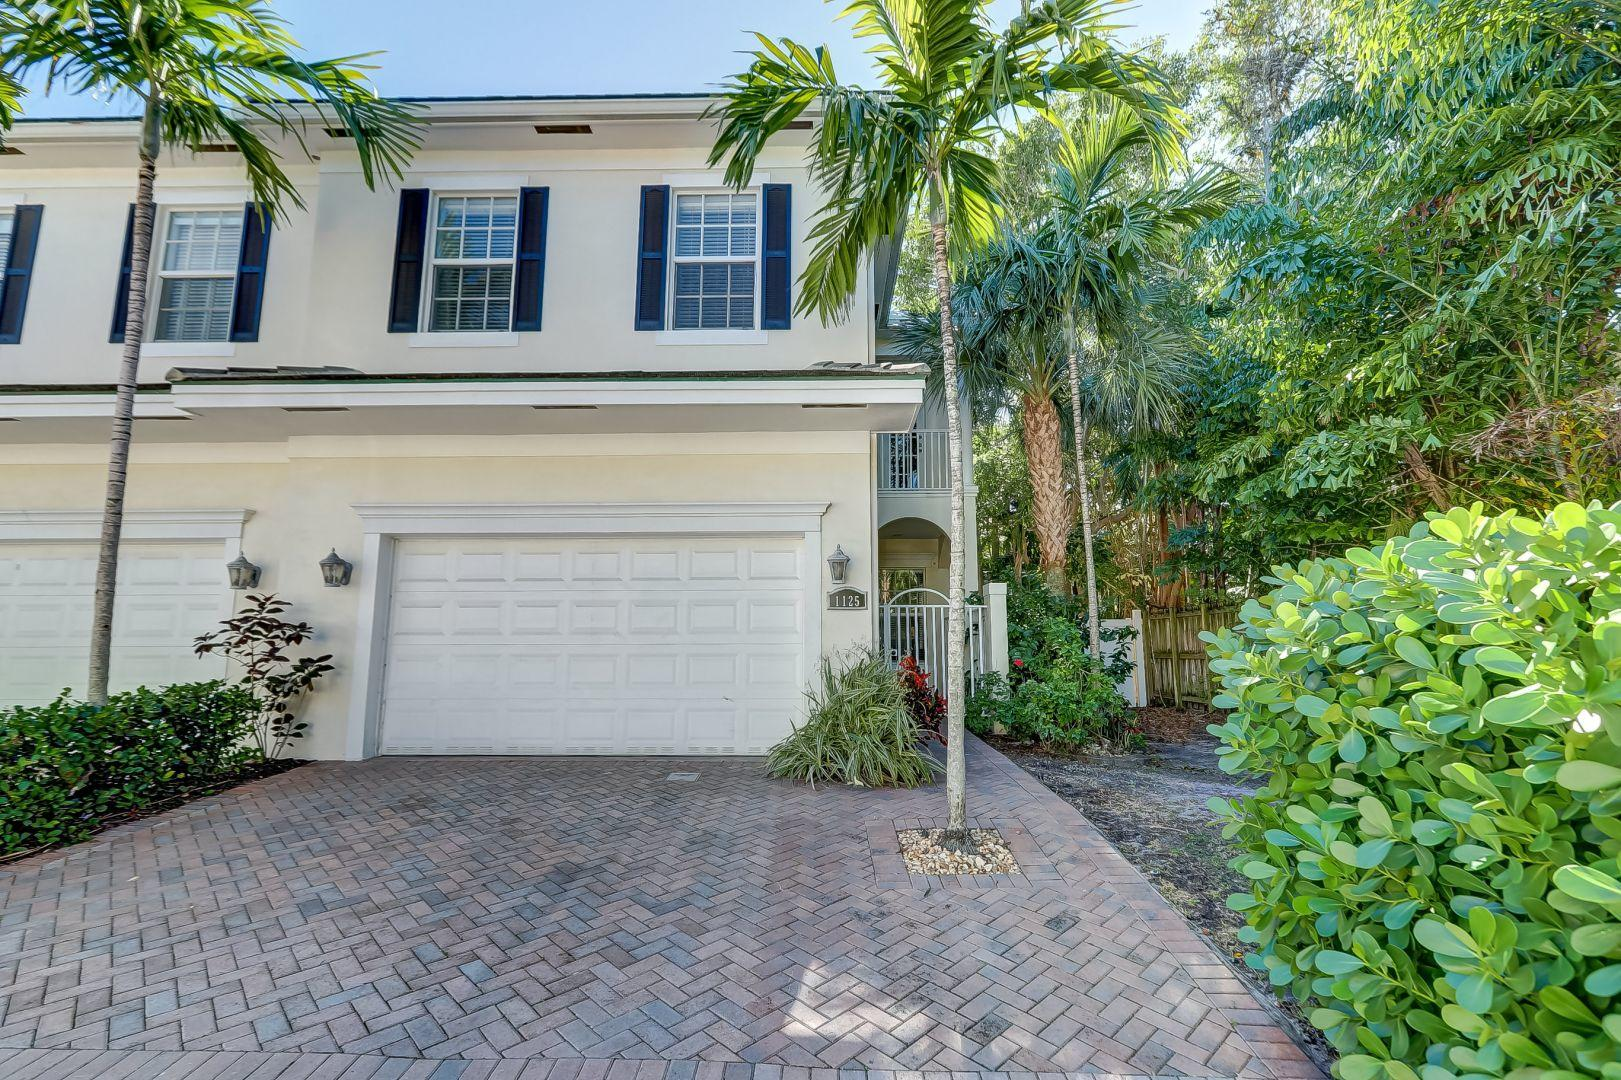 Home for sale in PROGRESSO Fort Lauderdale Florida